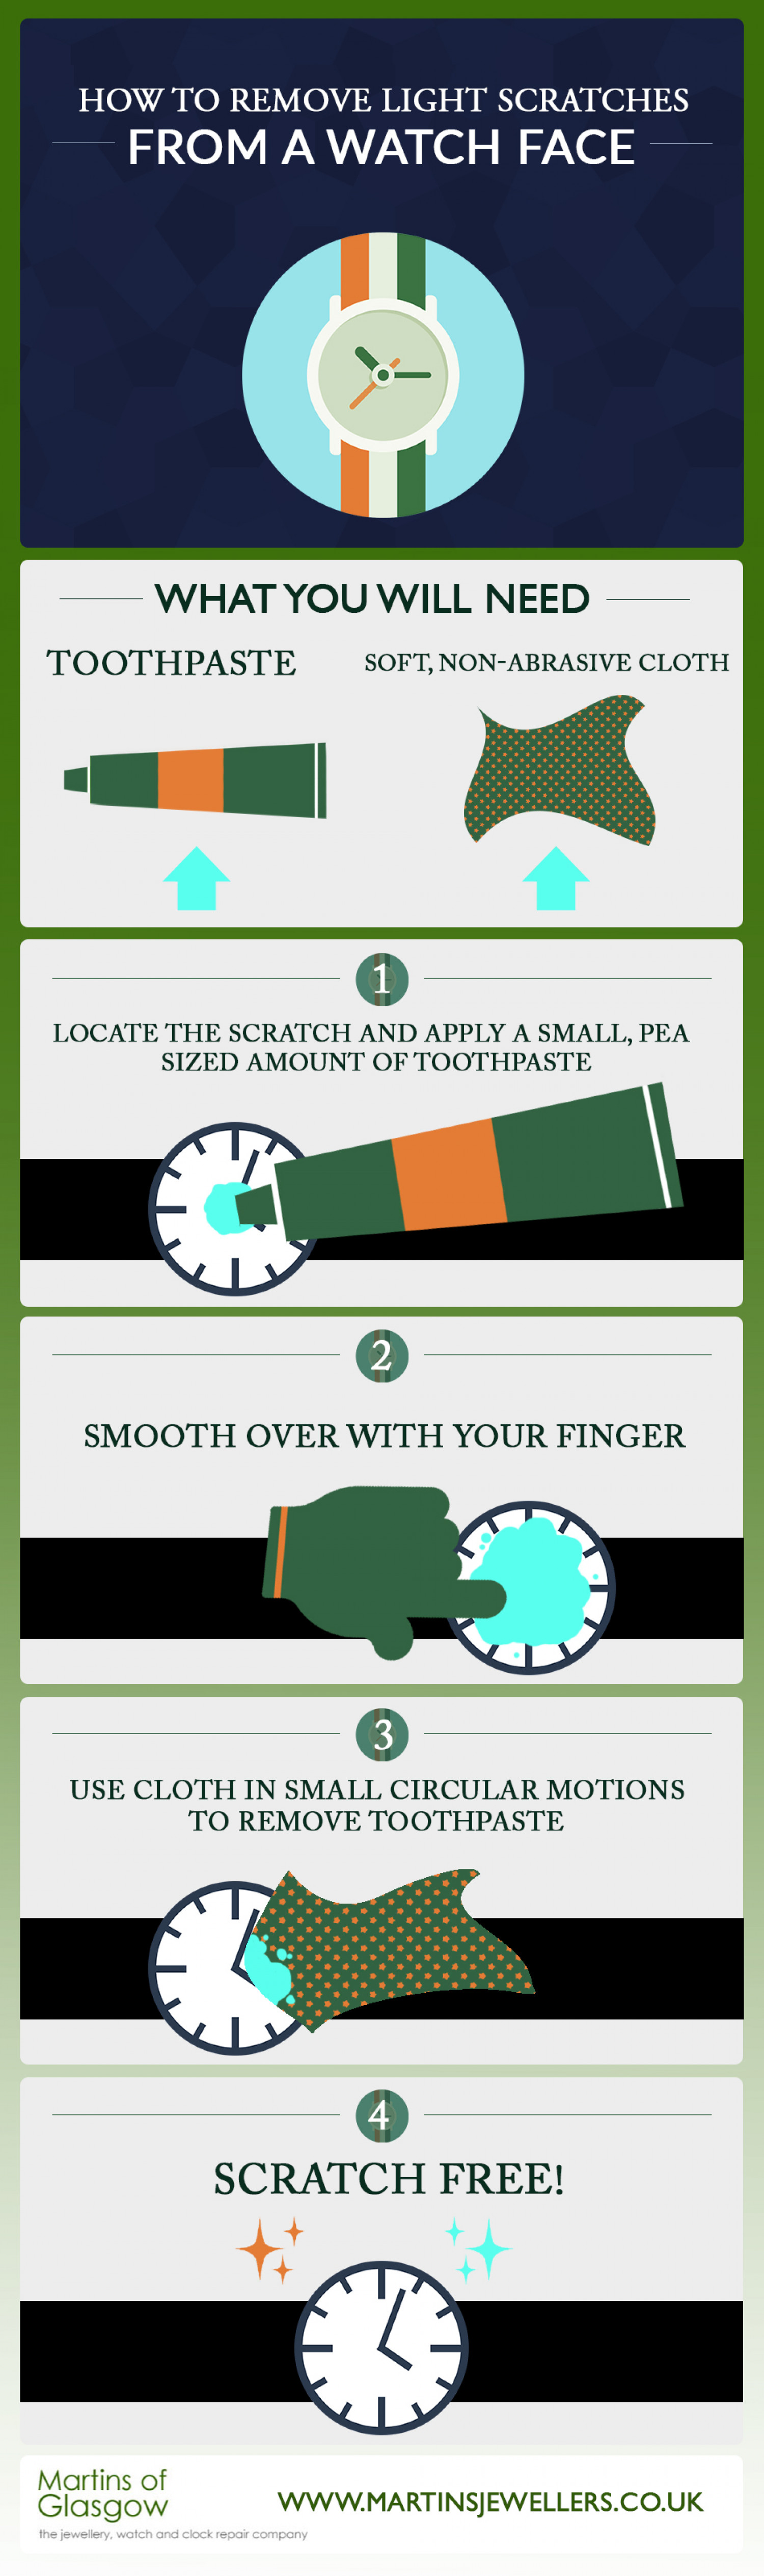 How To: Remove Light Scratches From A Watch Face  Infographic